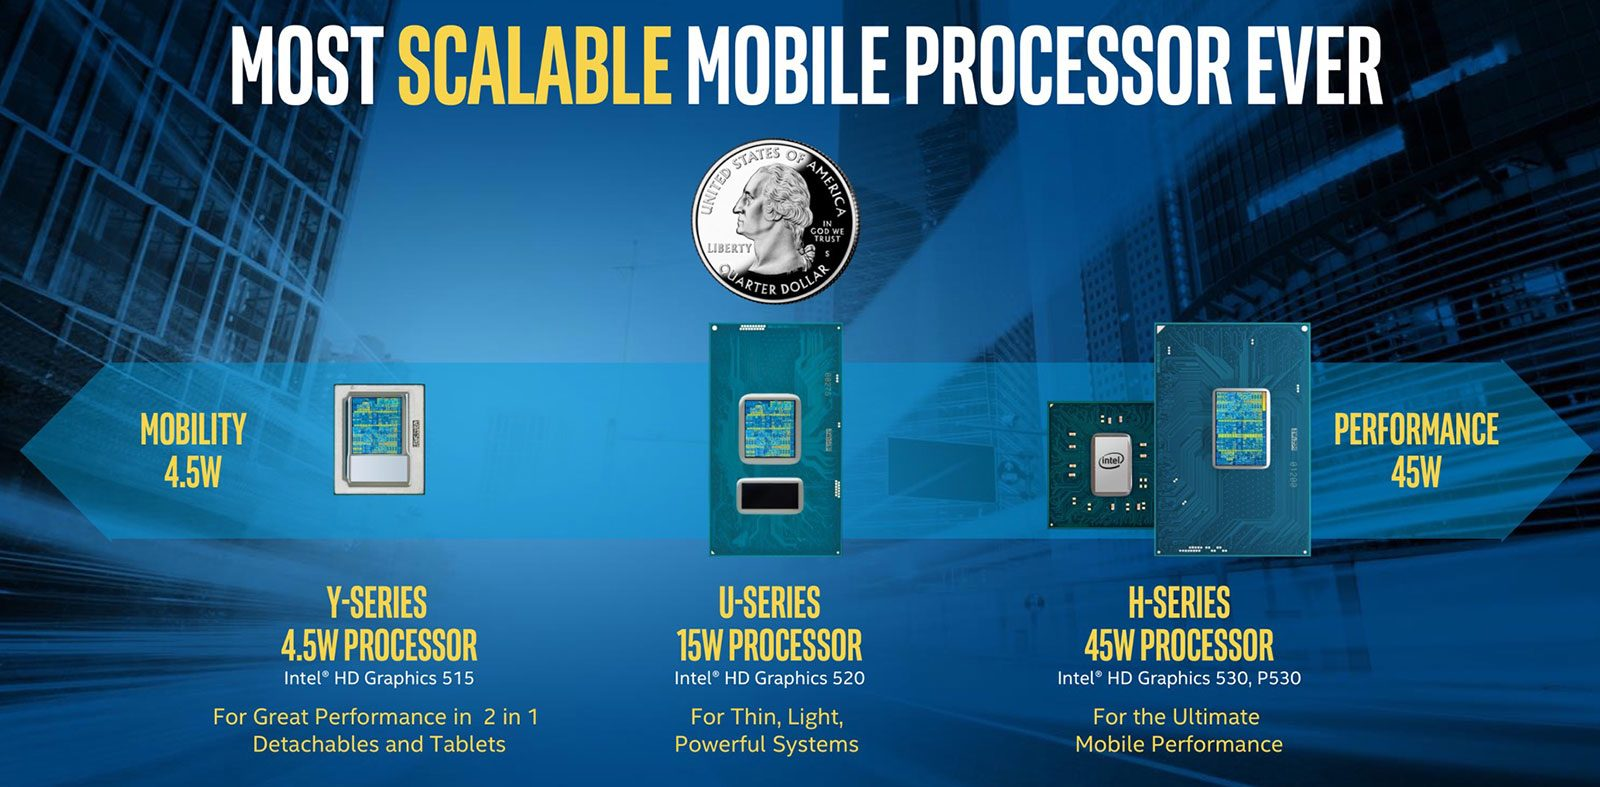 Intel Skylake mobile processors ranging from 4.5W to 45W